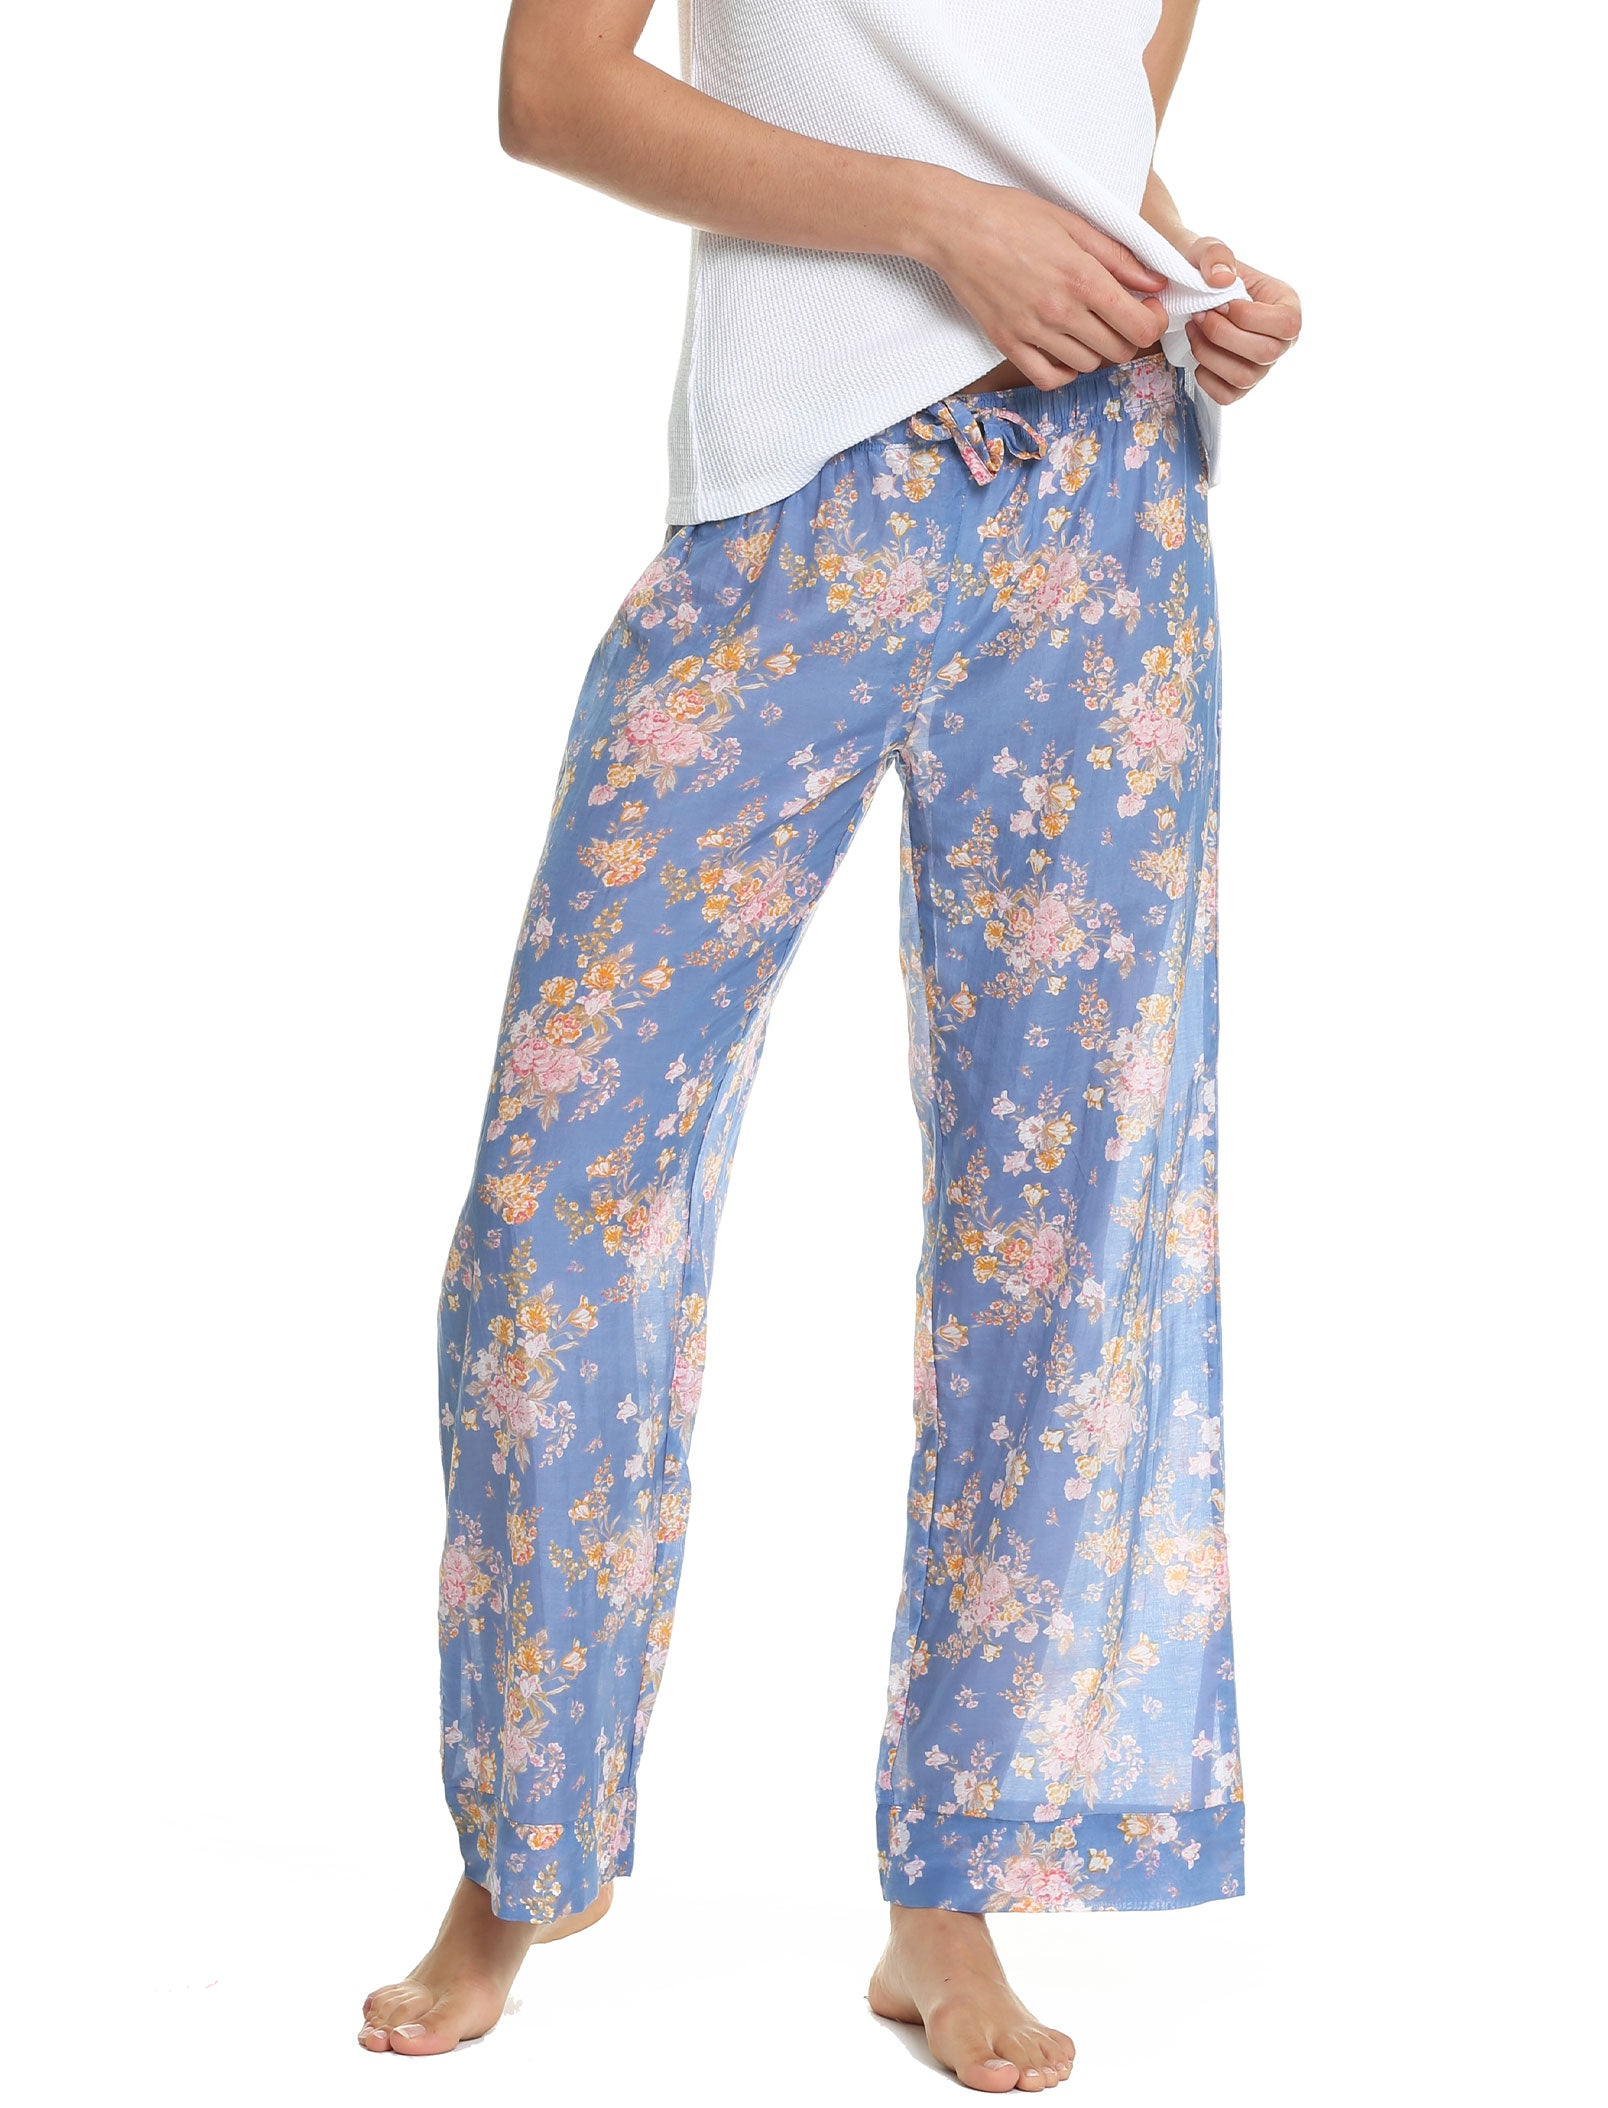 Lou Lou Bleu Full Length Pant